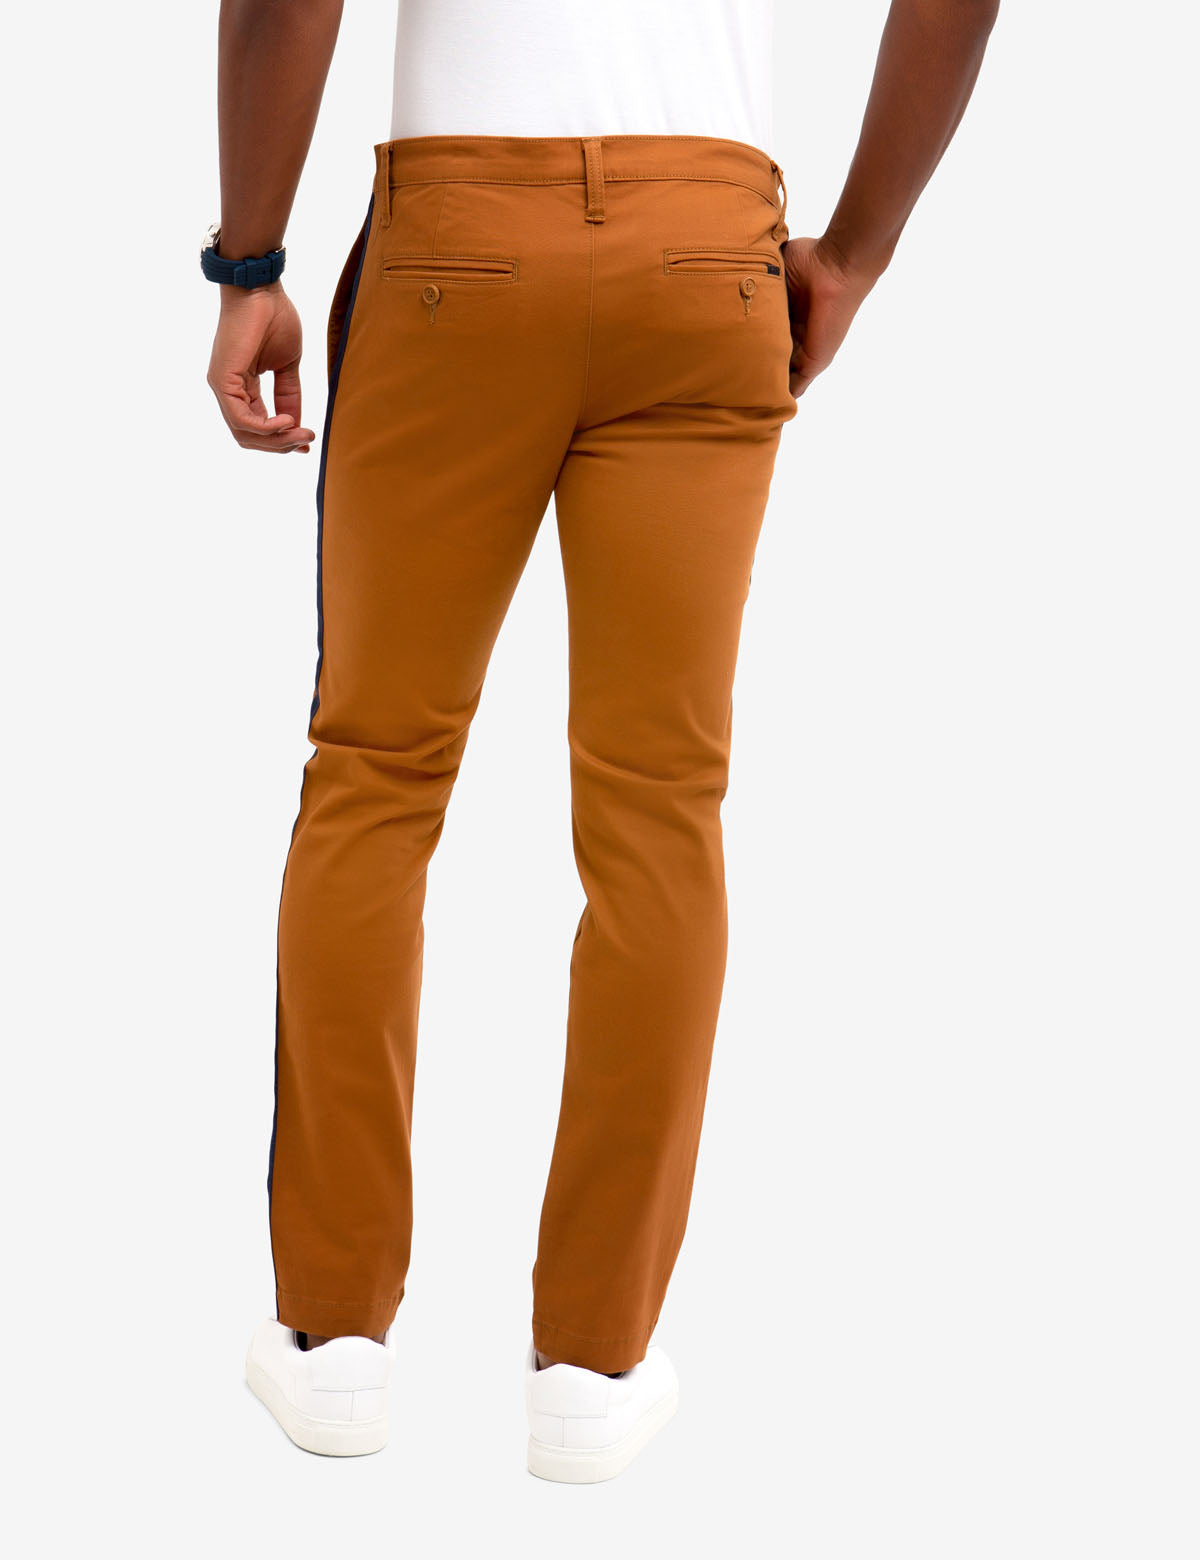 SKINNY SIDE TAPE CHINOS - U.S. Polo Assn.